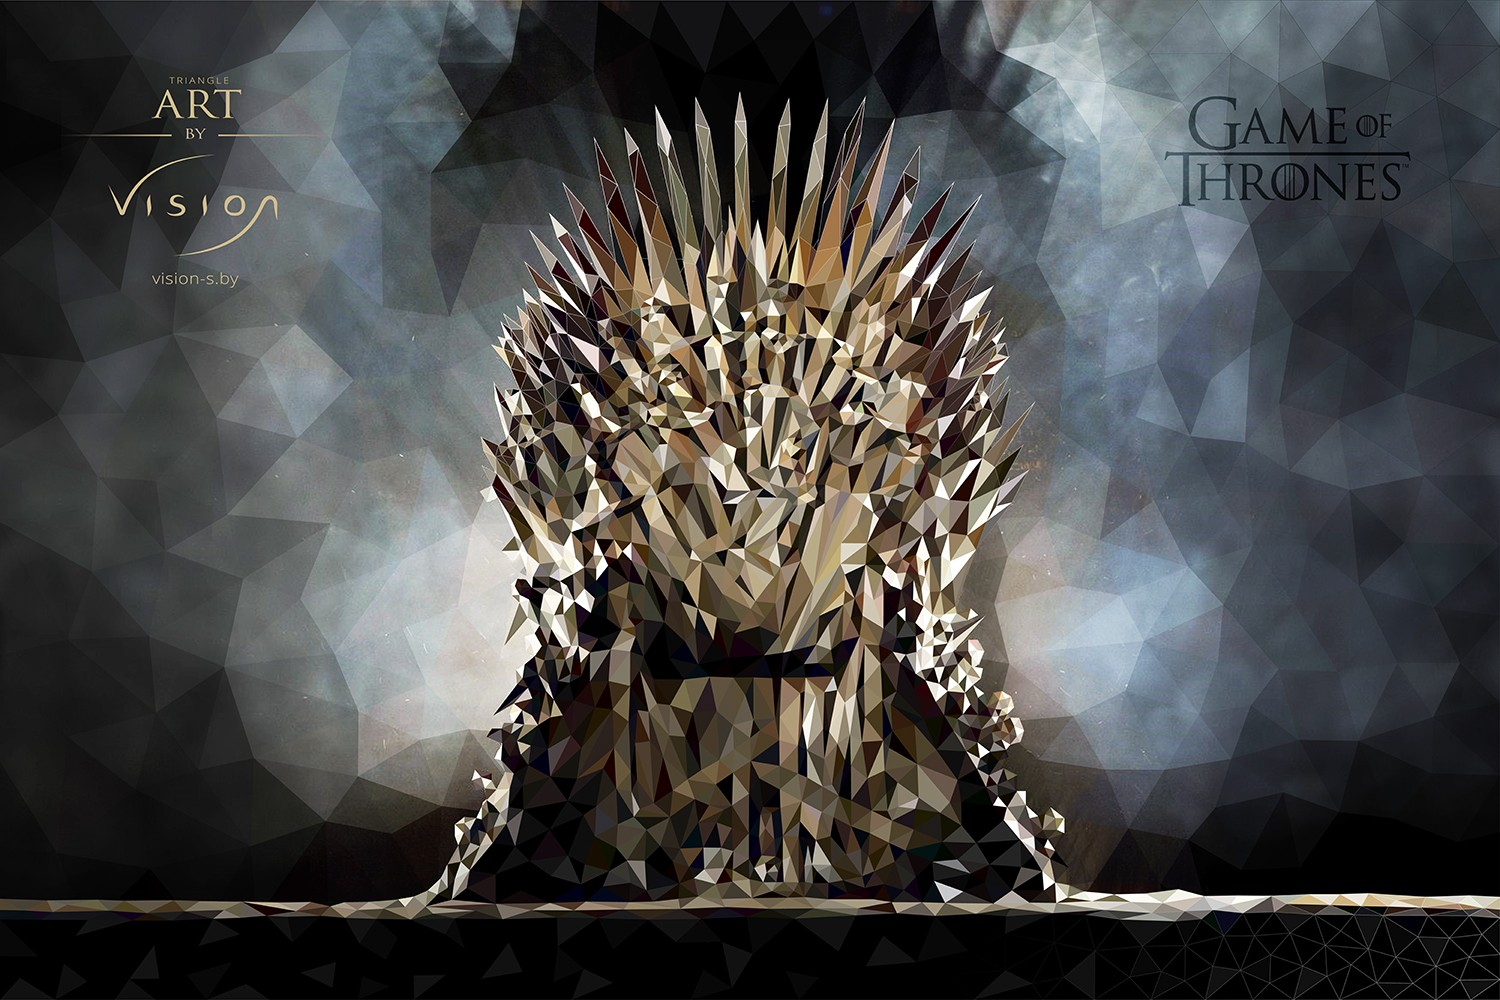 Game of thrones_art_1500x1000px